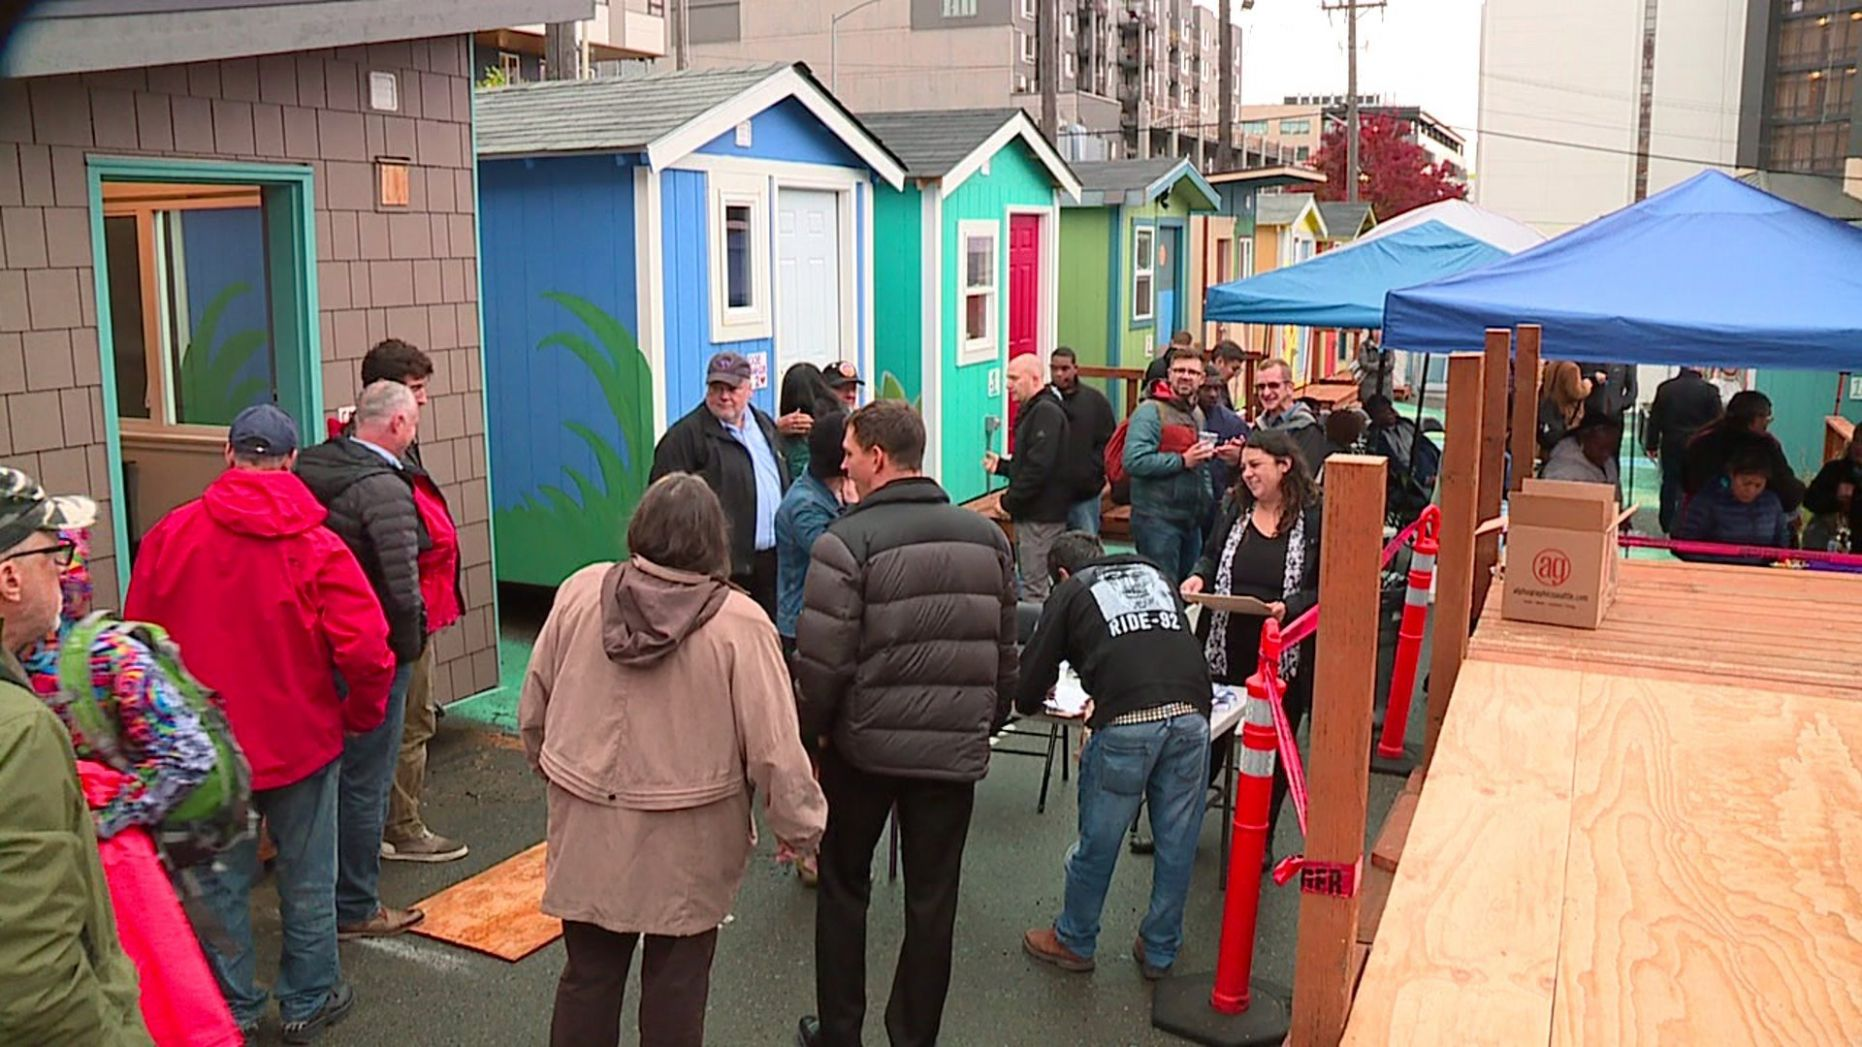 New tiny house village opens in south Lake Union neighborhood ..